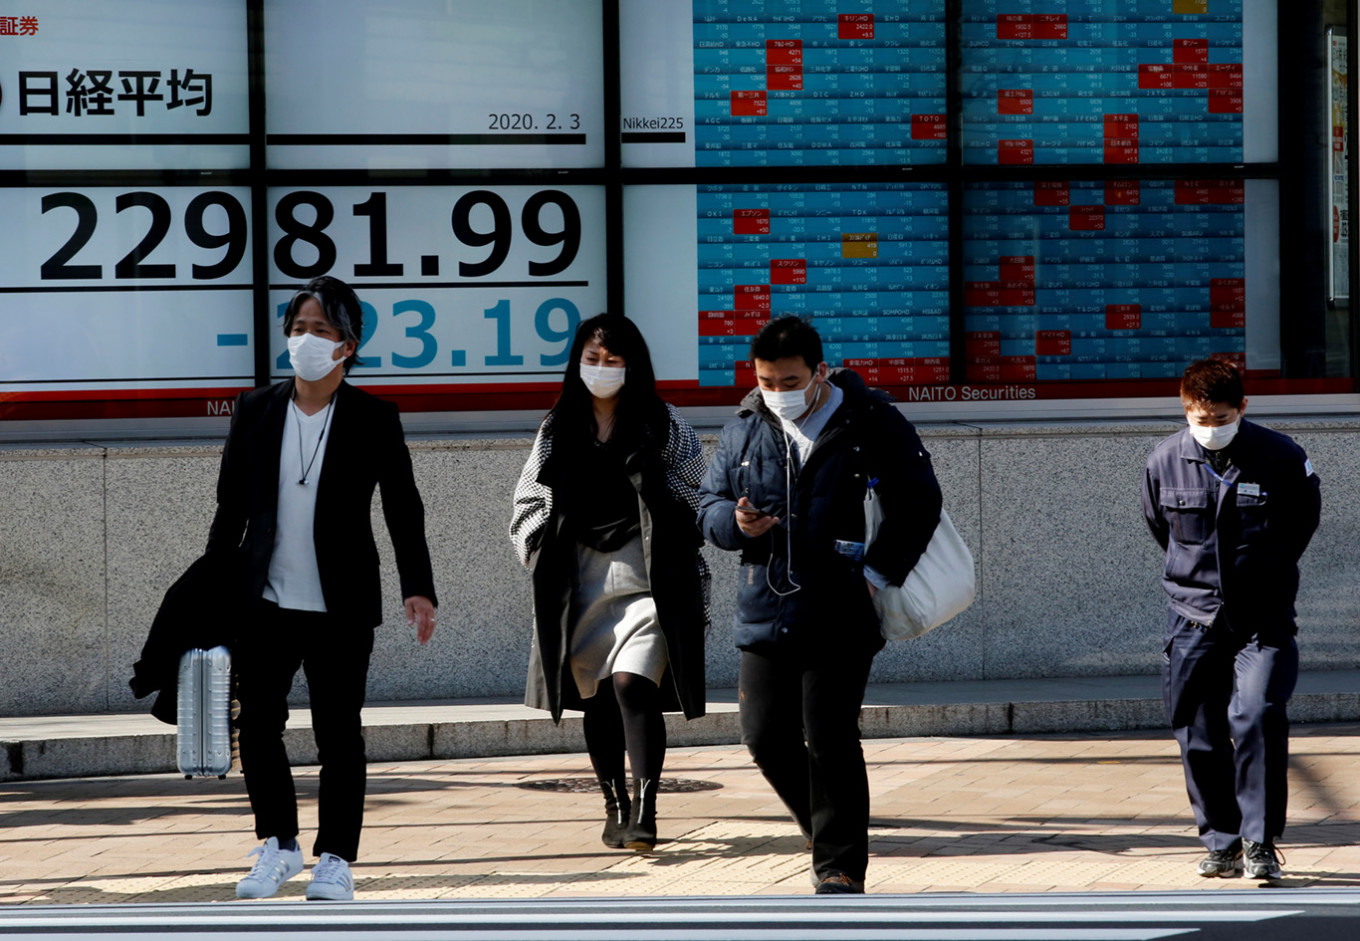 Tokyo's Nikkei closes down more than 2% after US market rout